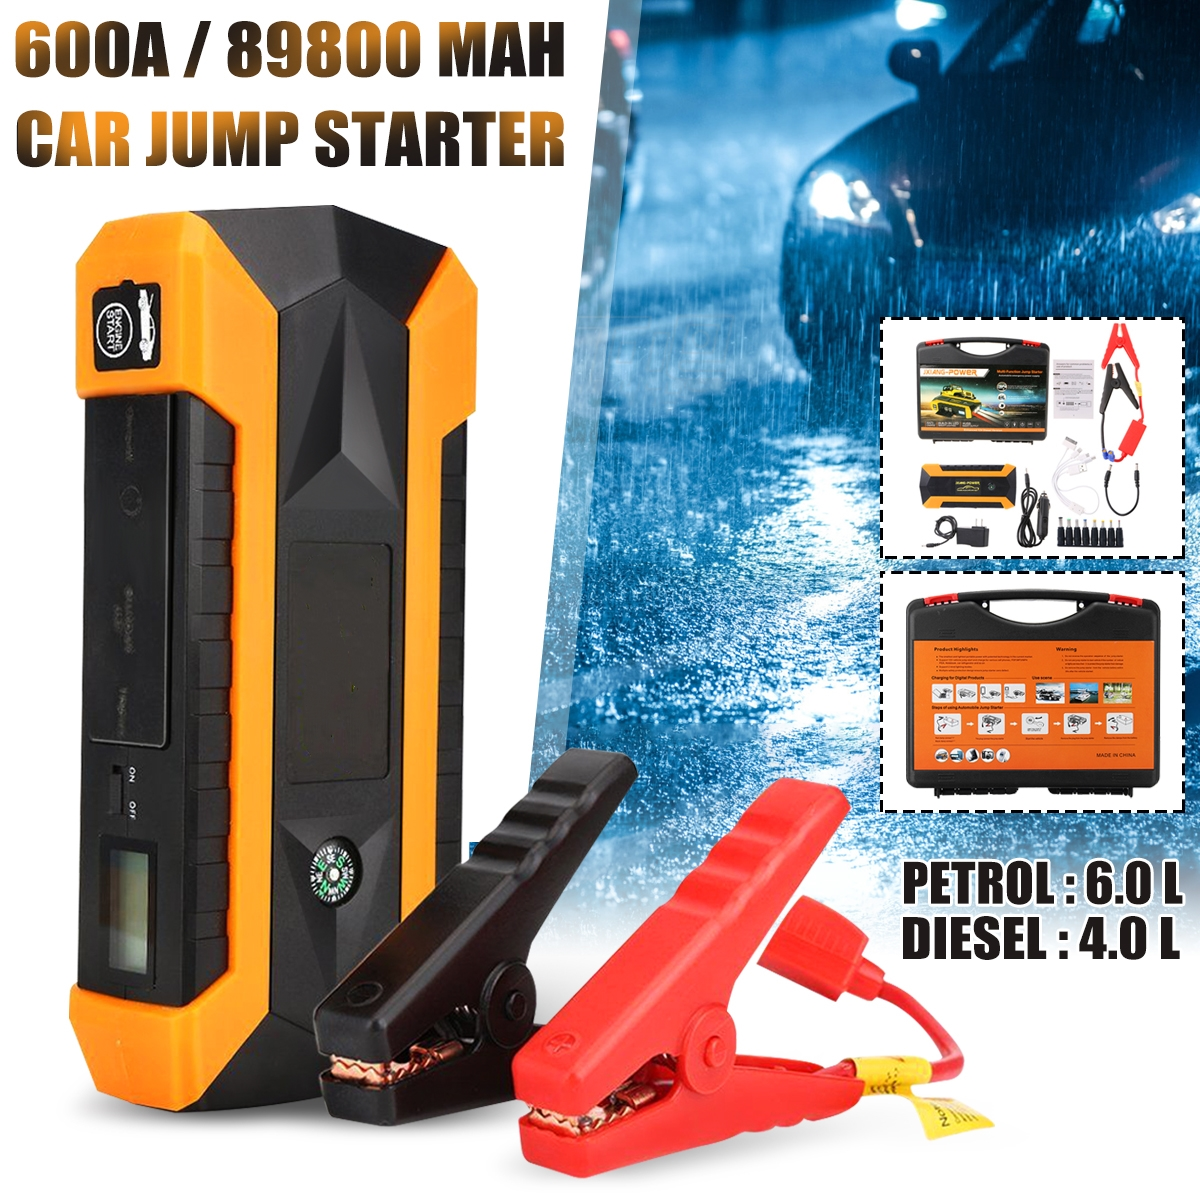 89800mAh Car Jump Starter 12V 4USB 600A Portable Car Battery Booster Charger Booster Power Bank Starting